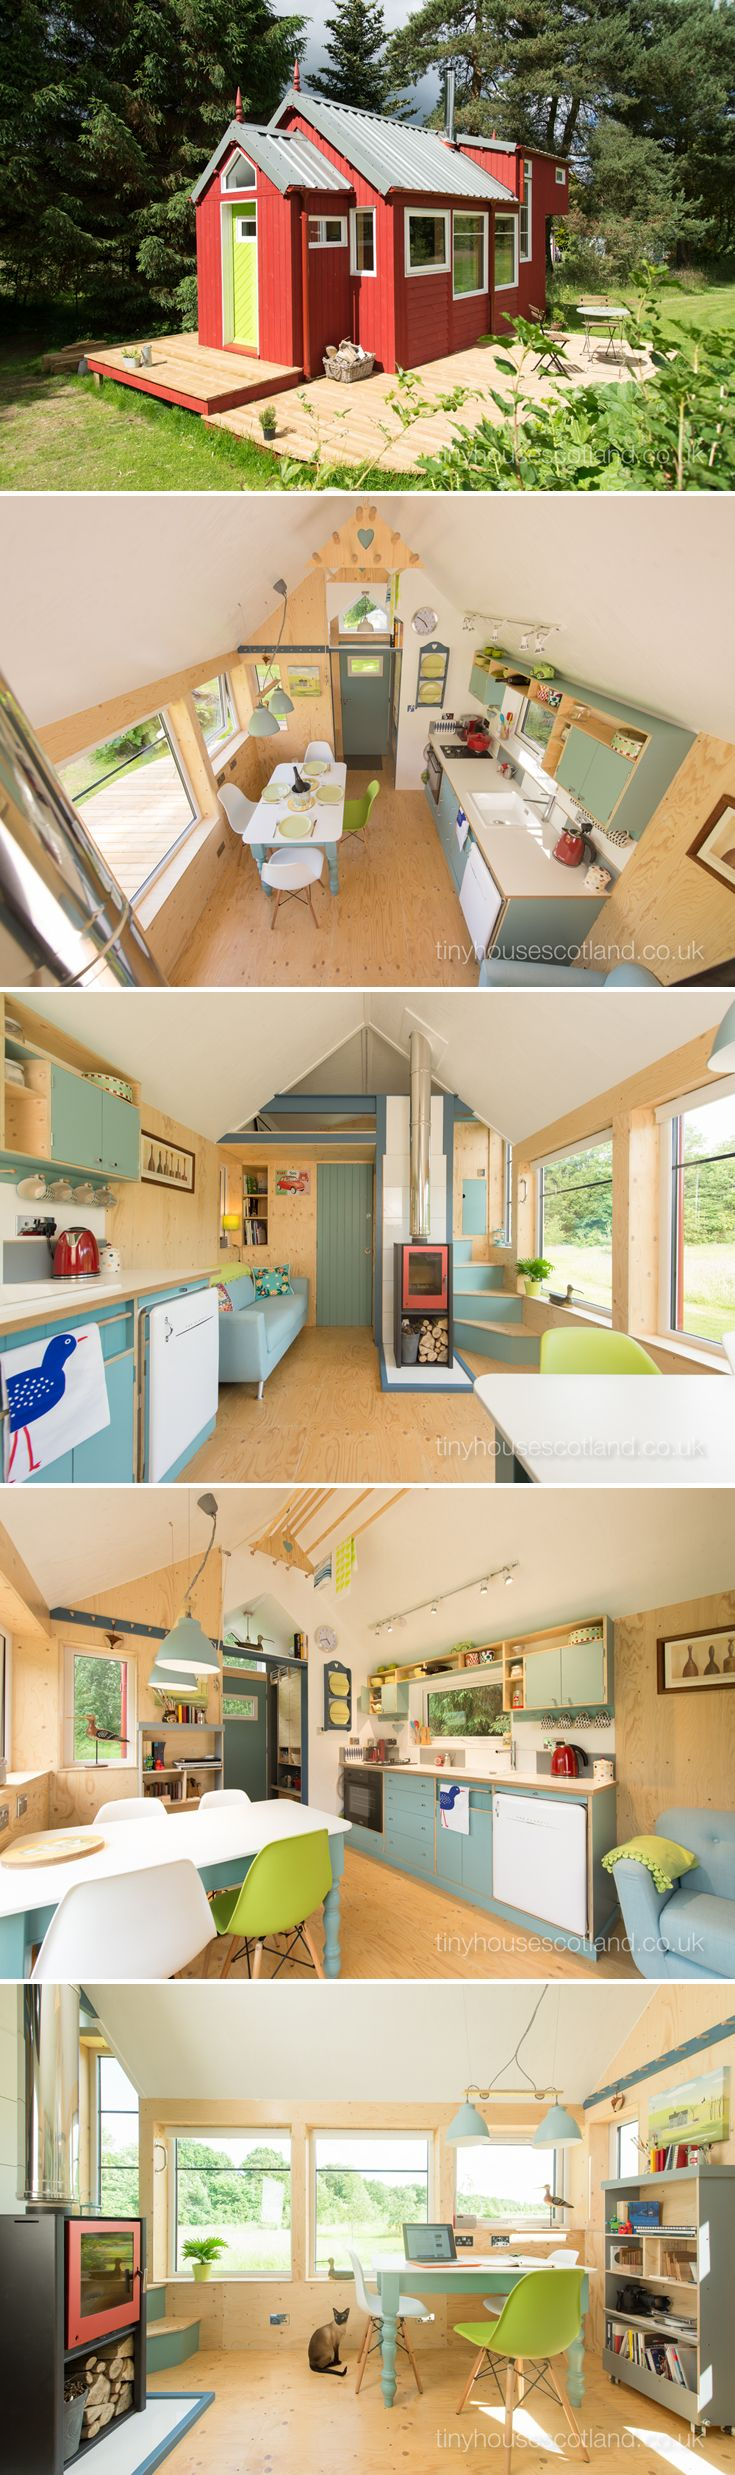 Jonathan Avery of Tiny Home Scotland designed and developed the NestHouse, an e…